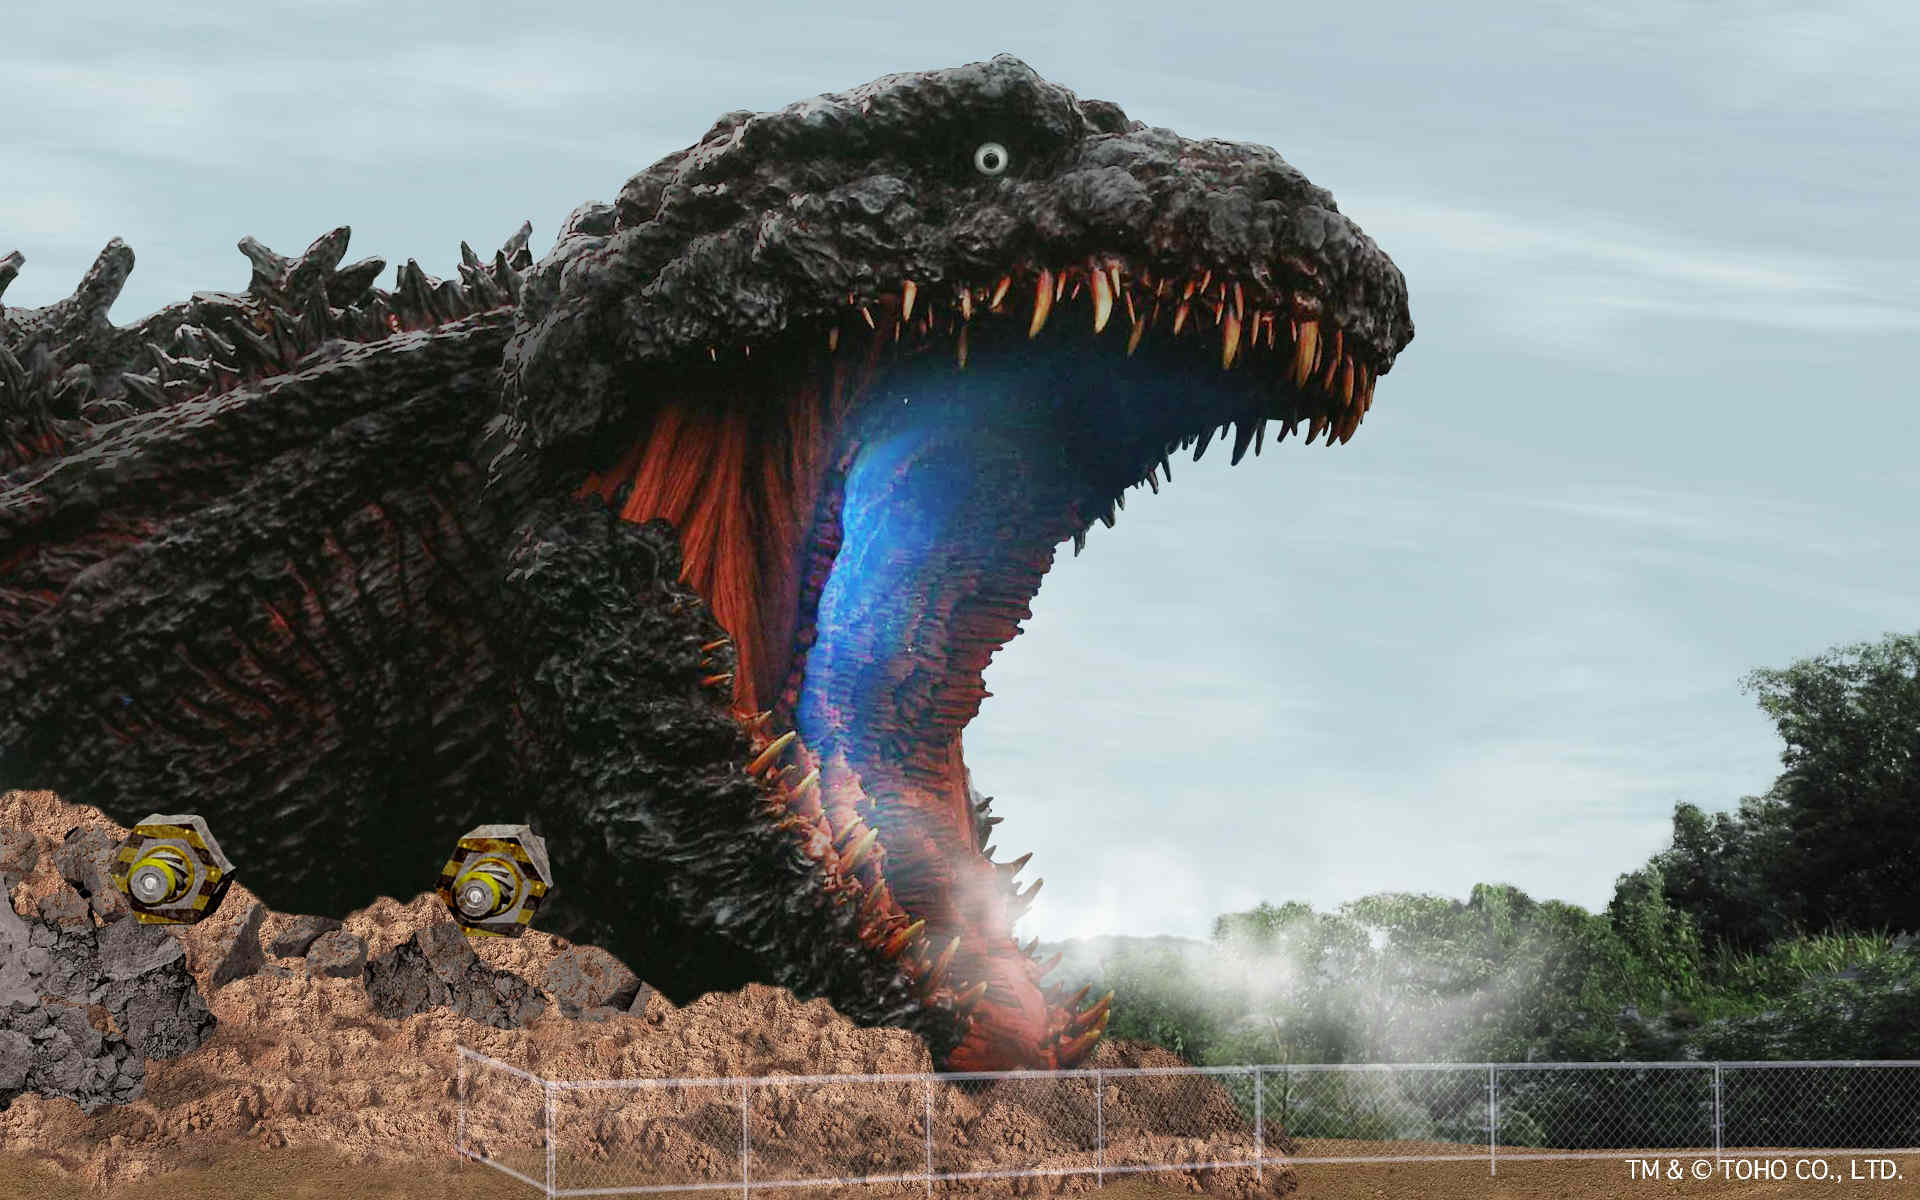 The Godzilla attraction in Japan